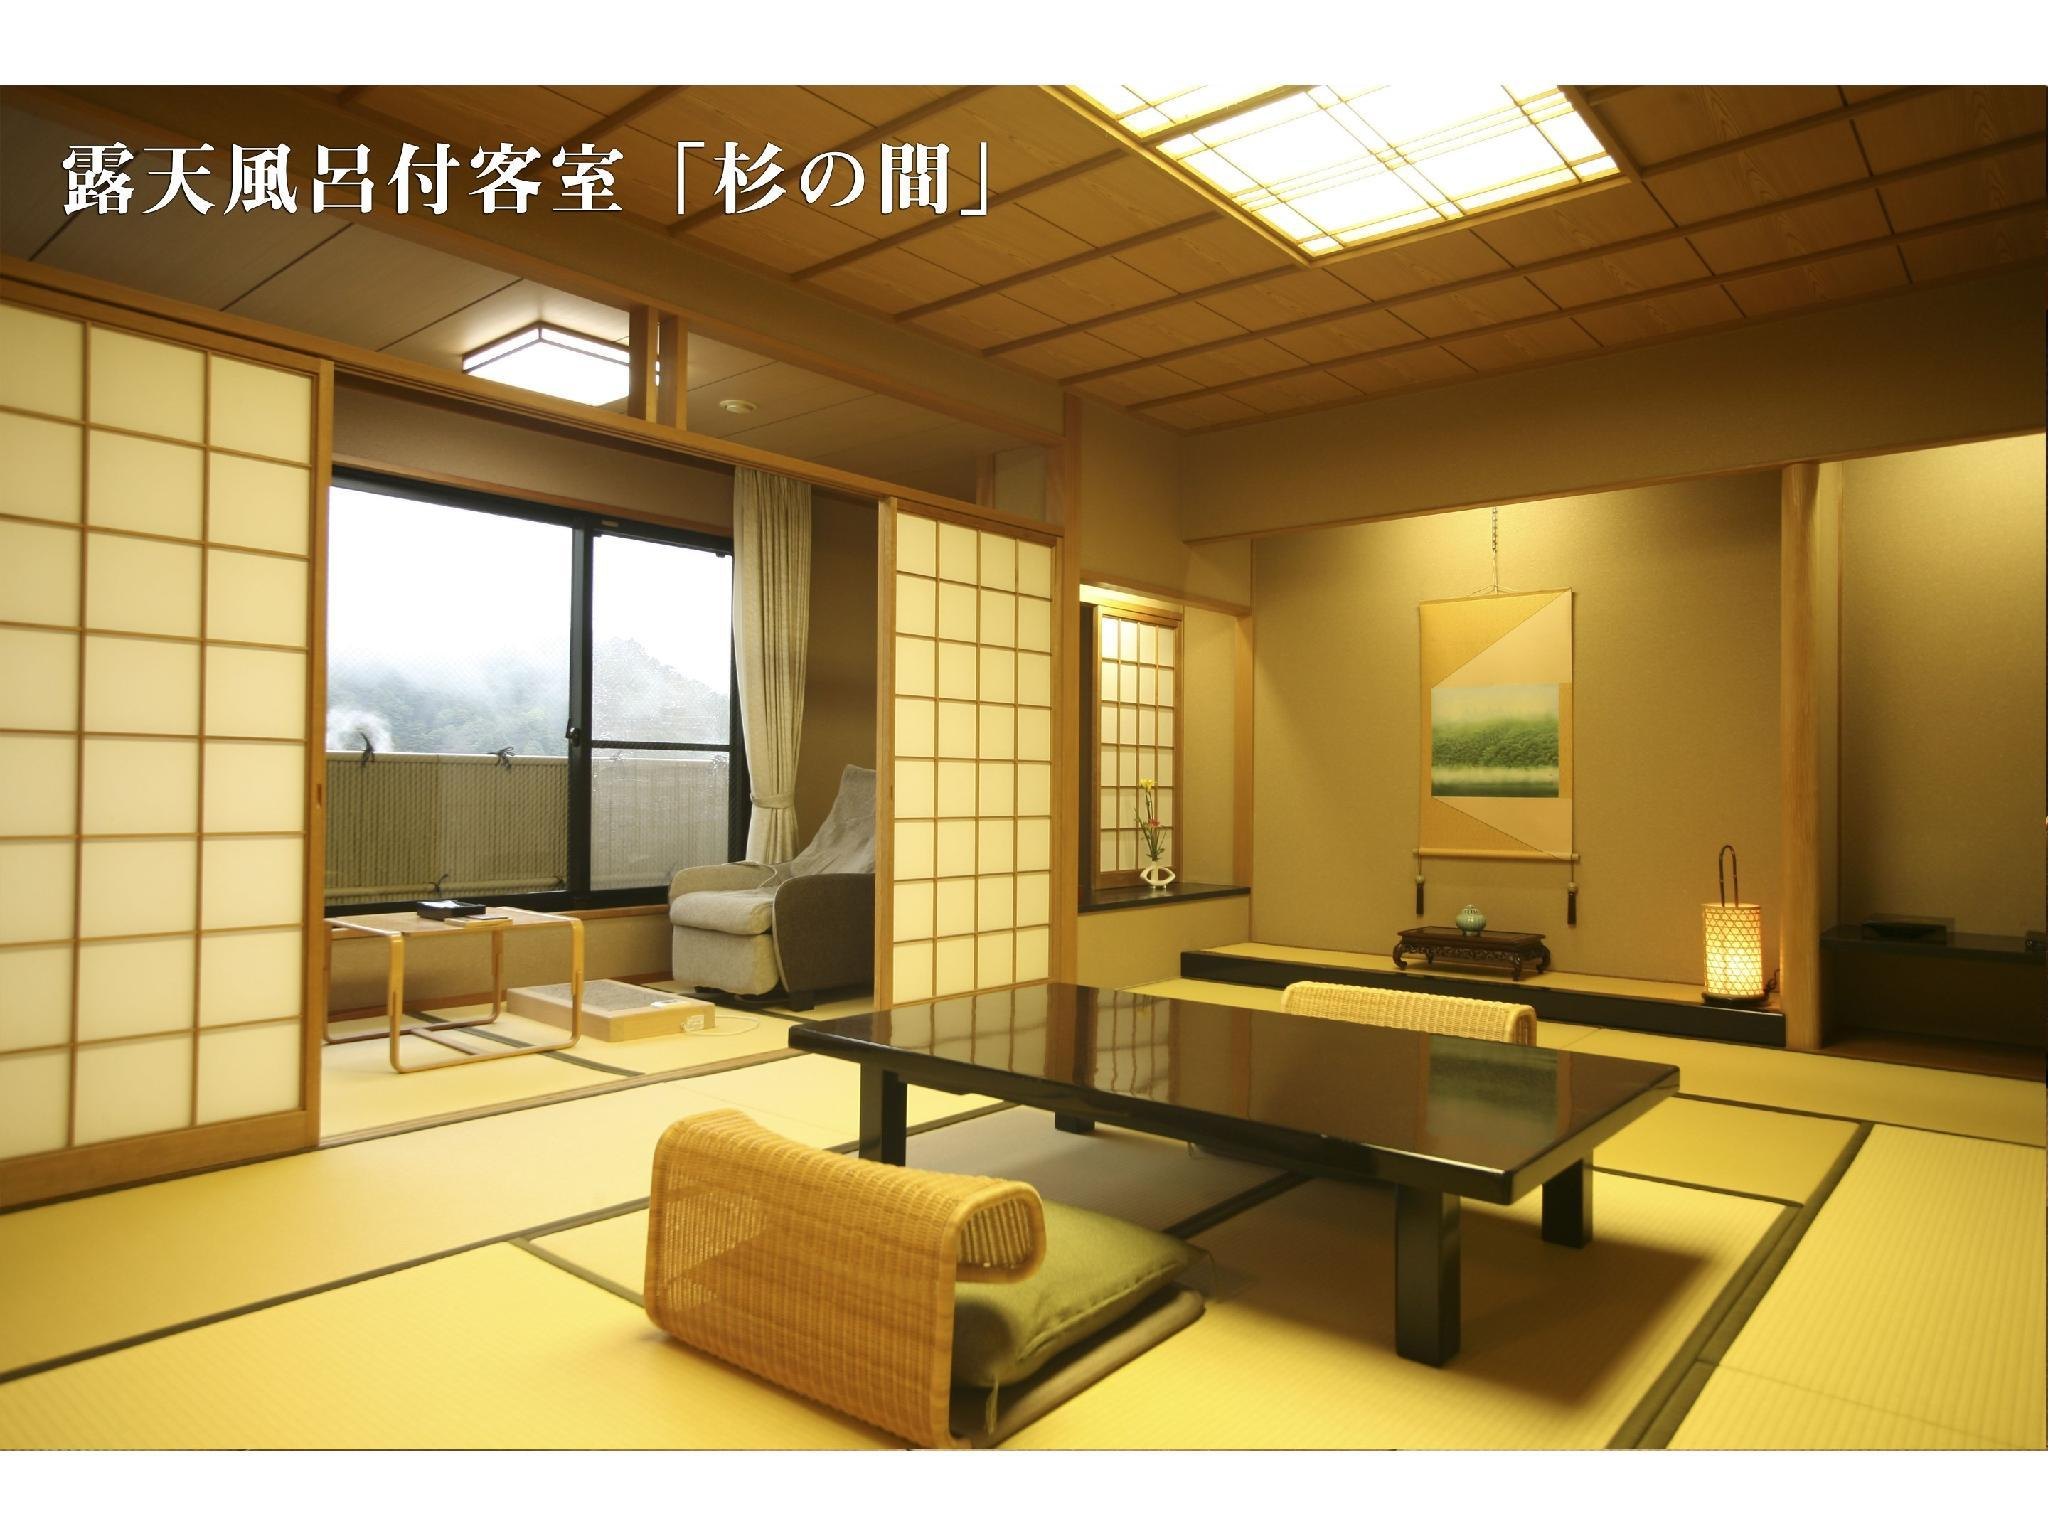 特別房(和式房2間+溫泉露天風呂) (Special Japanese-style Room with Open-air Hot Spring Bath (2 Room Type))